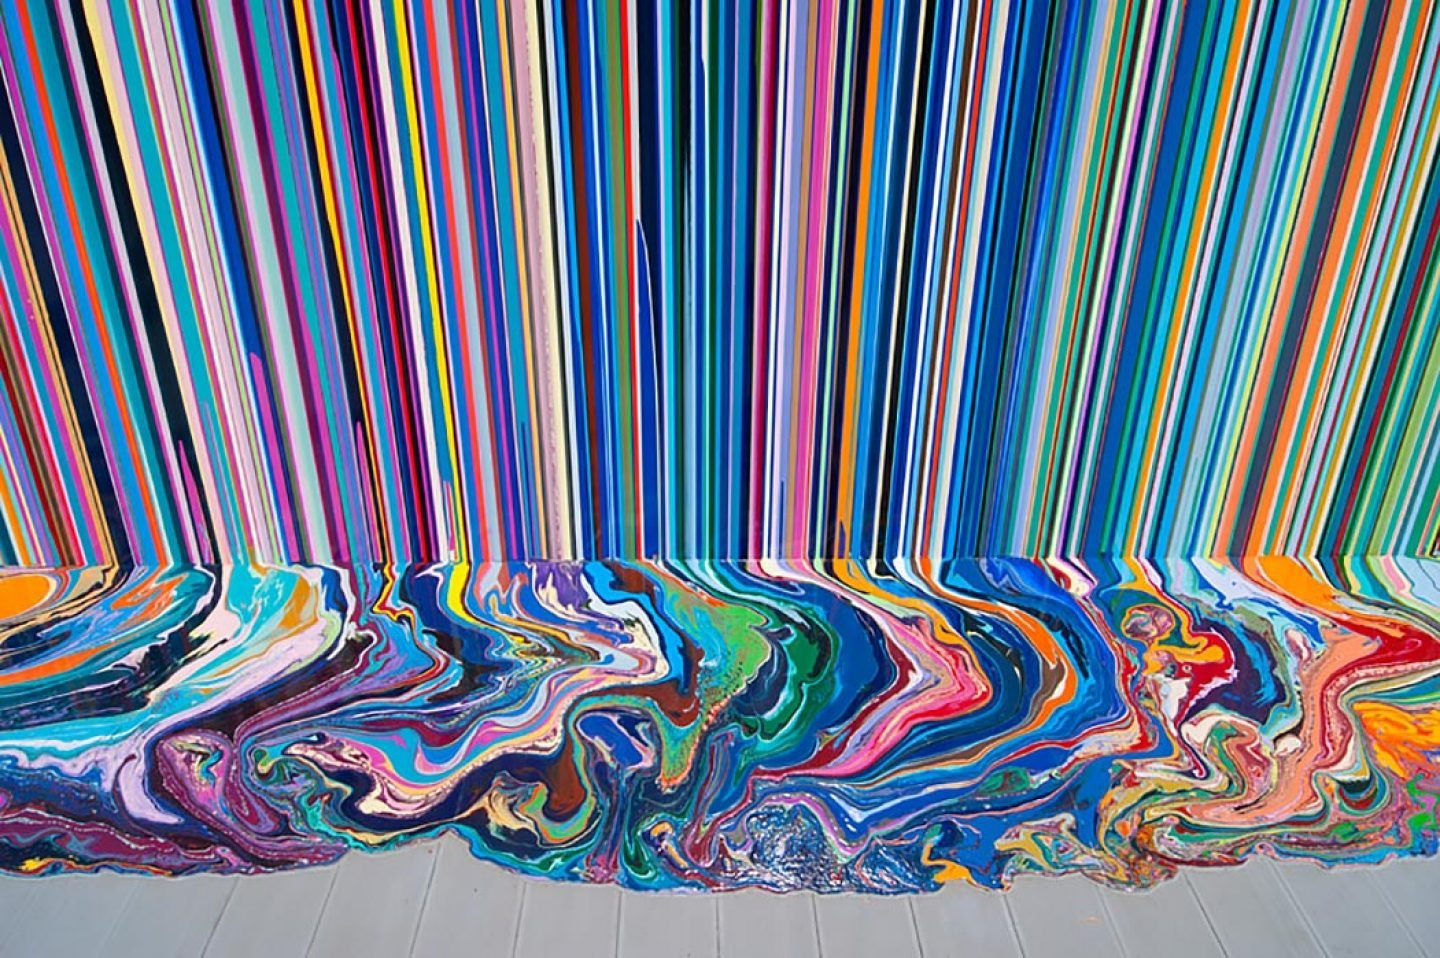 Ian Davenport U0026 39 S Poured Lines And Puddle Paintings